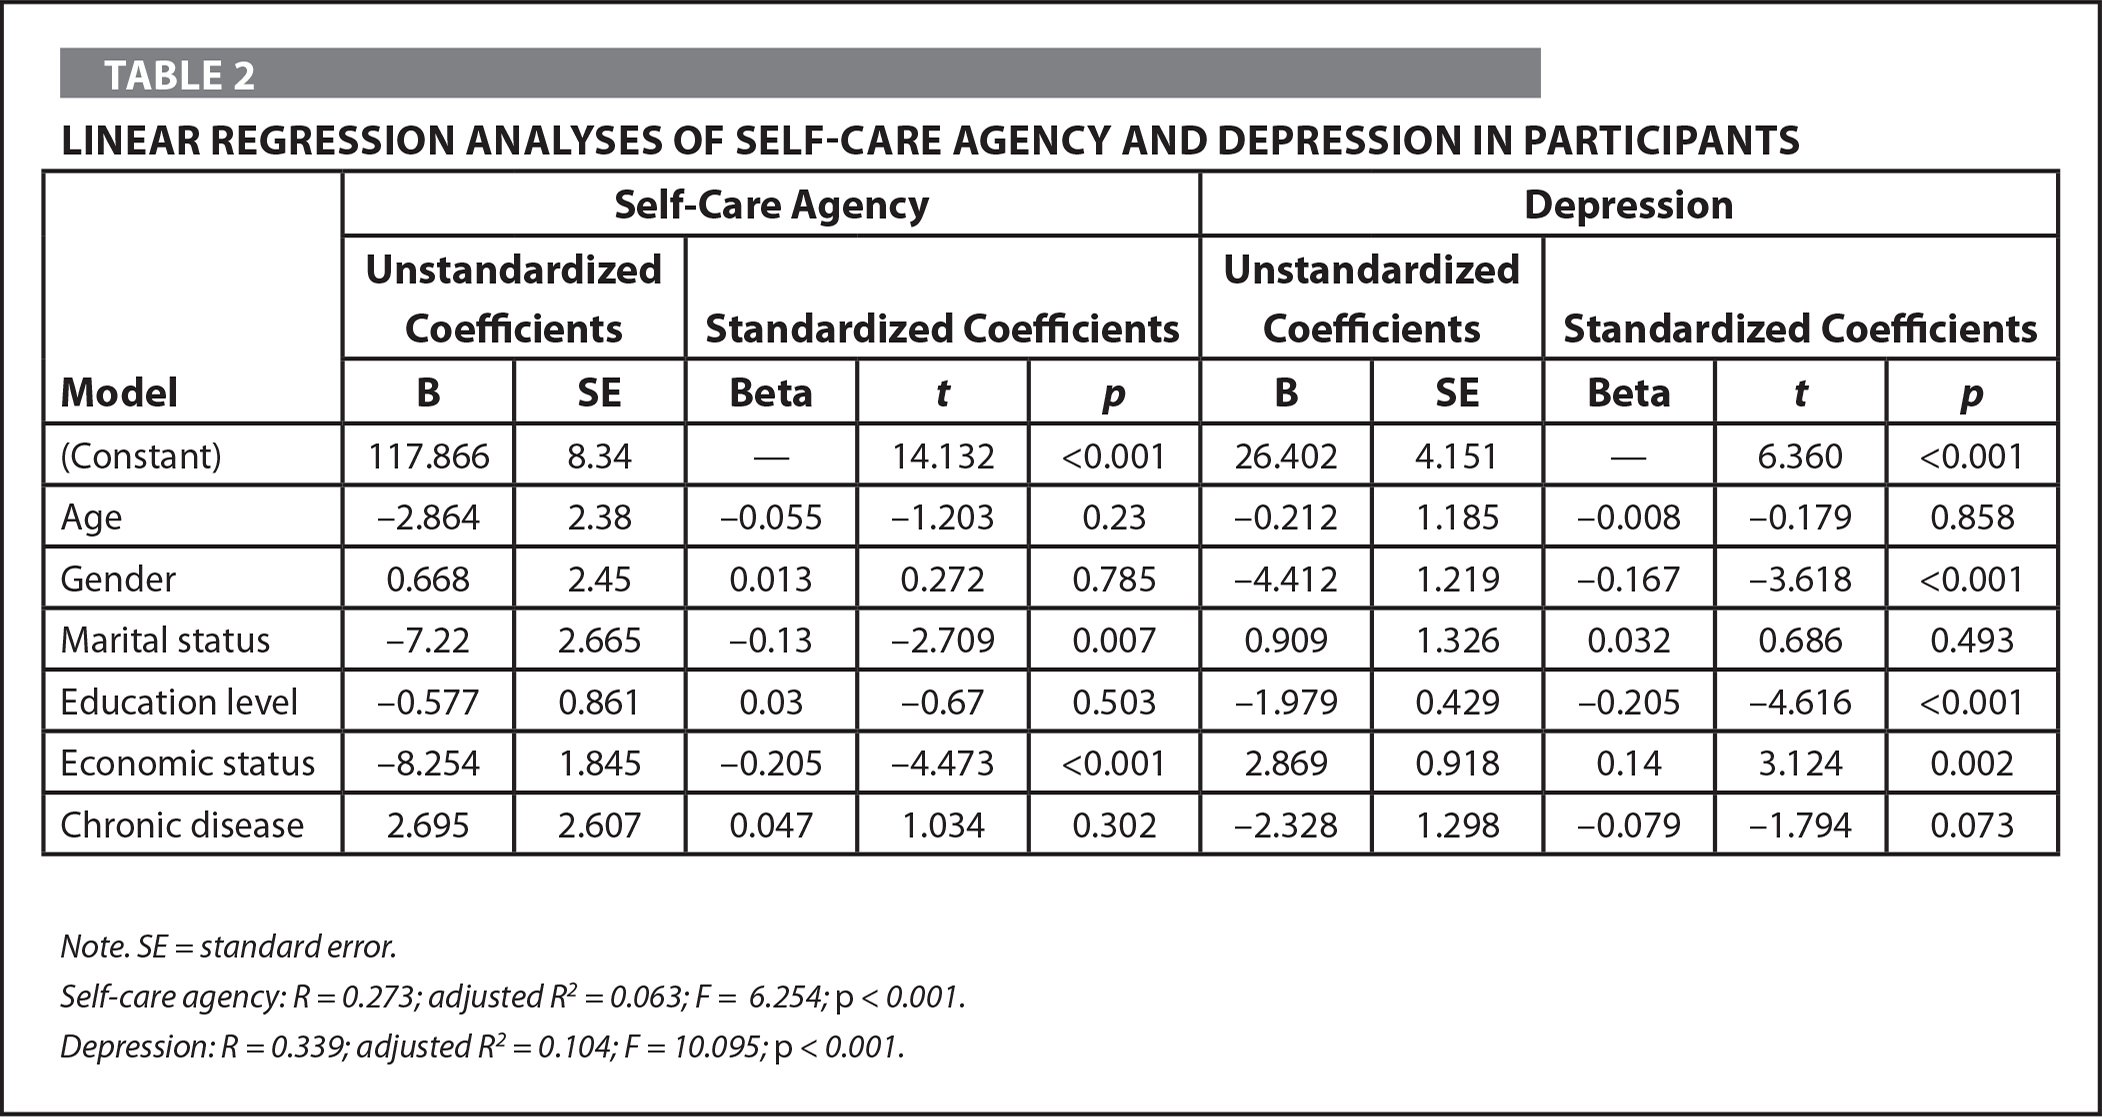 Linear Regression Analyses of Self-Care Agency and Depression in Participants